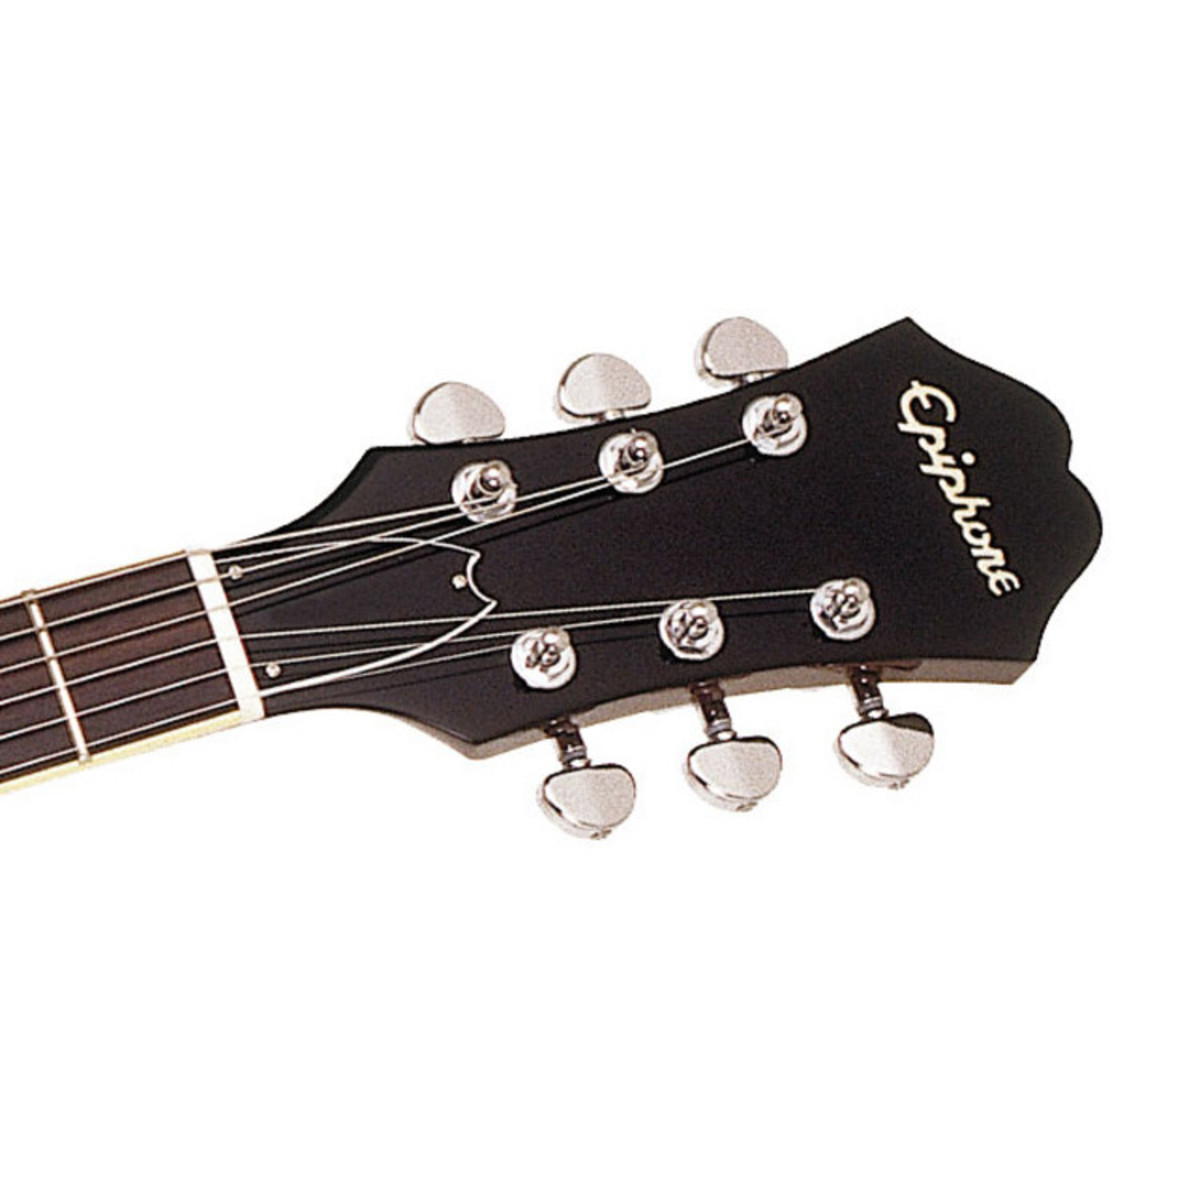 epiphone elitist casino vintage outfit